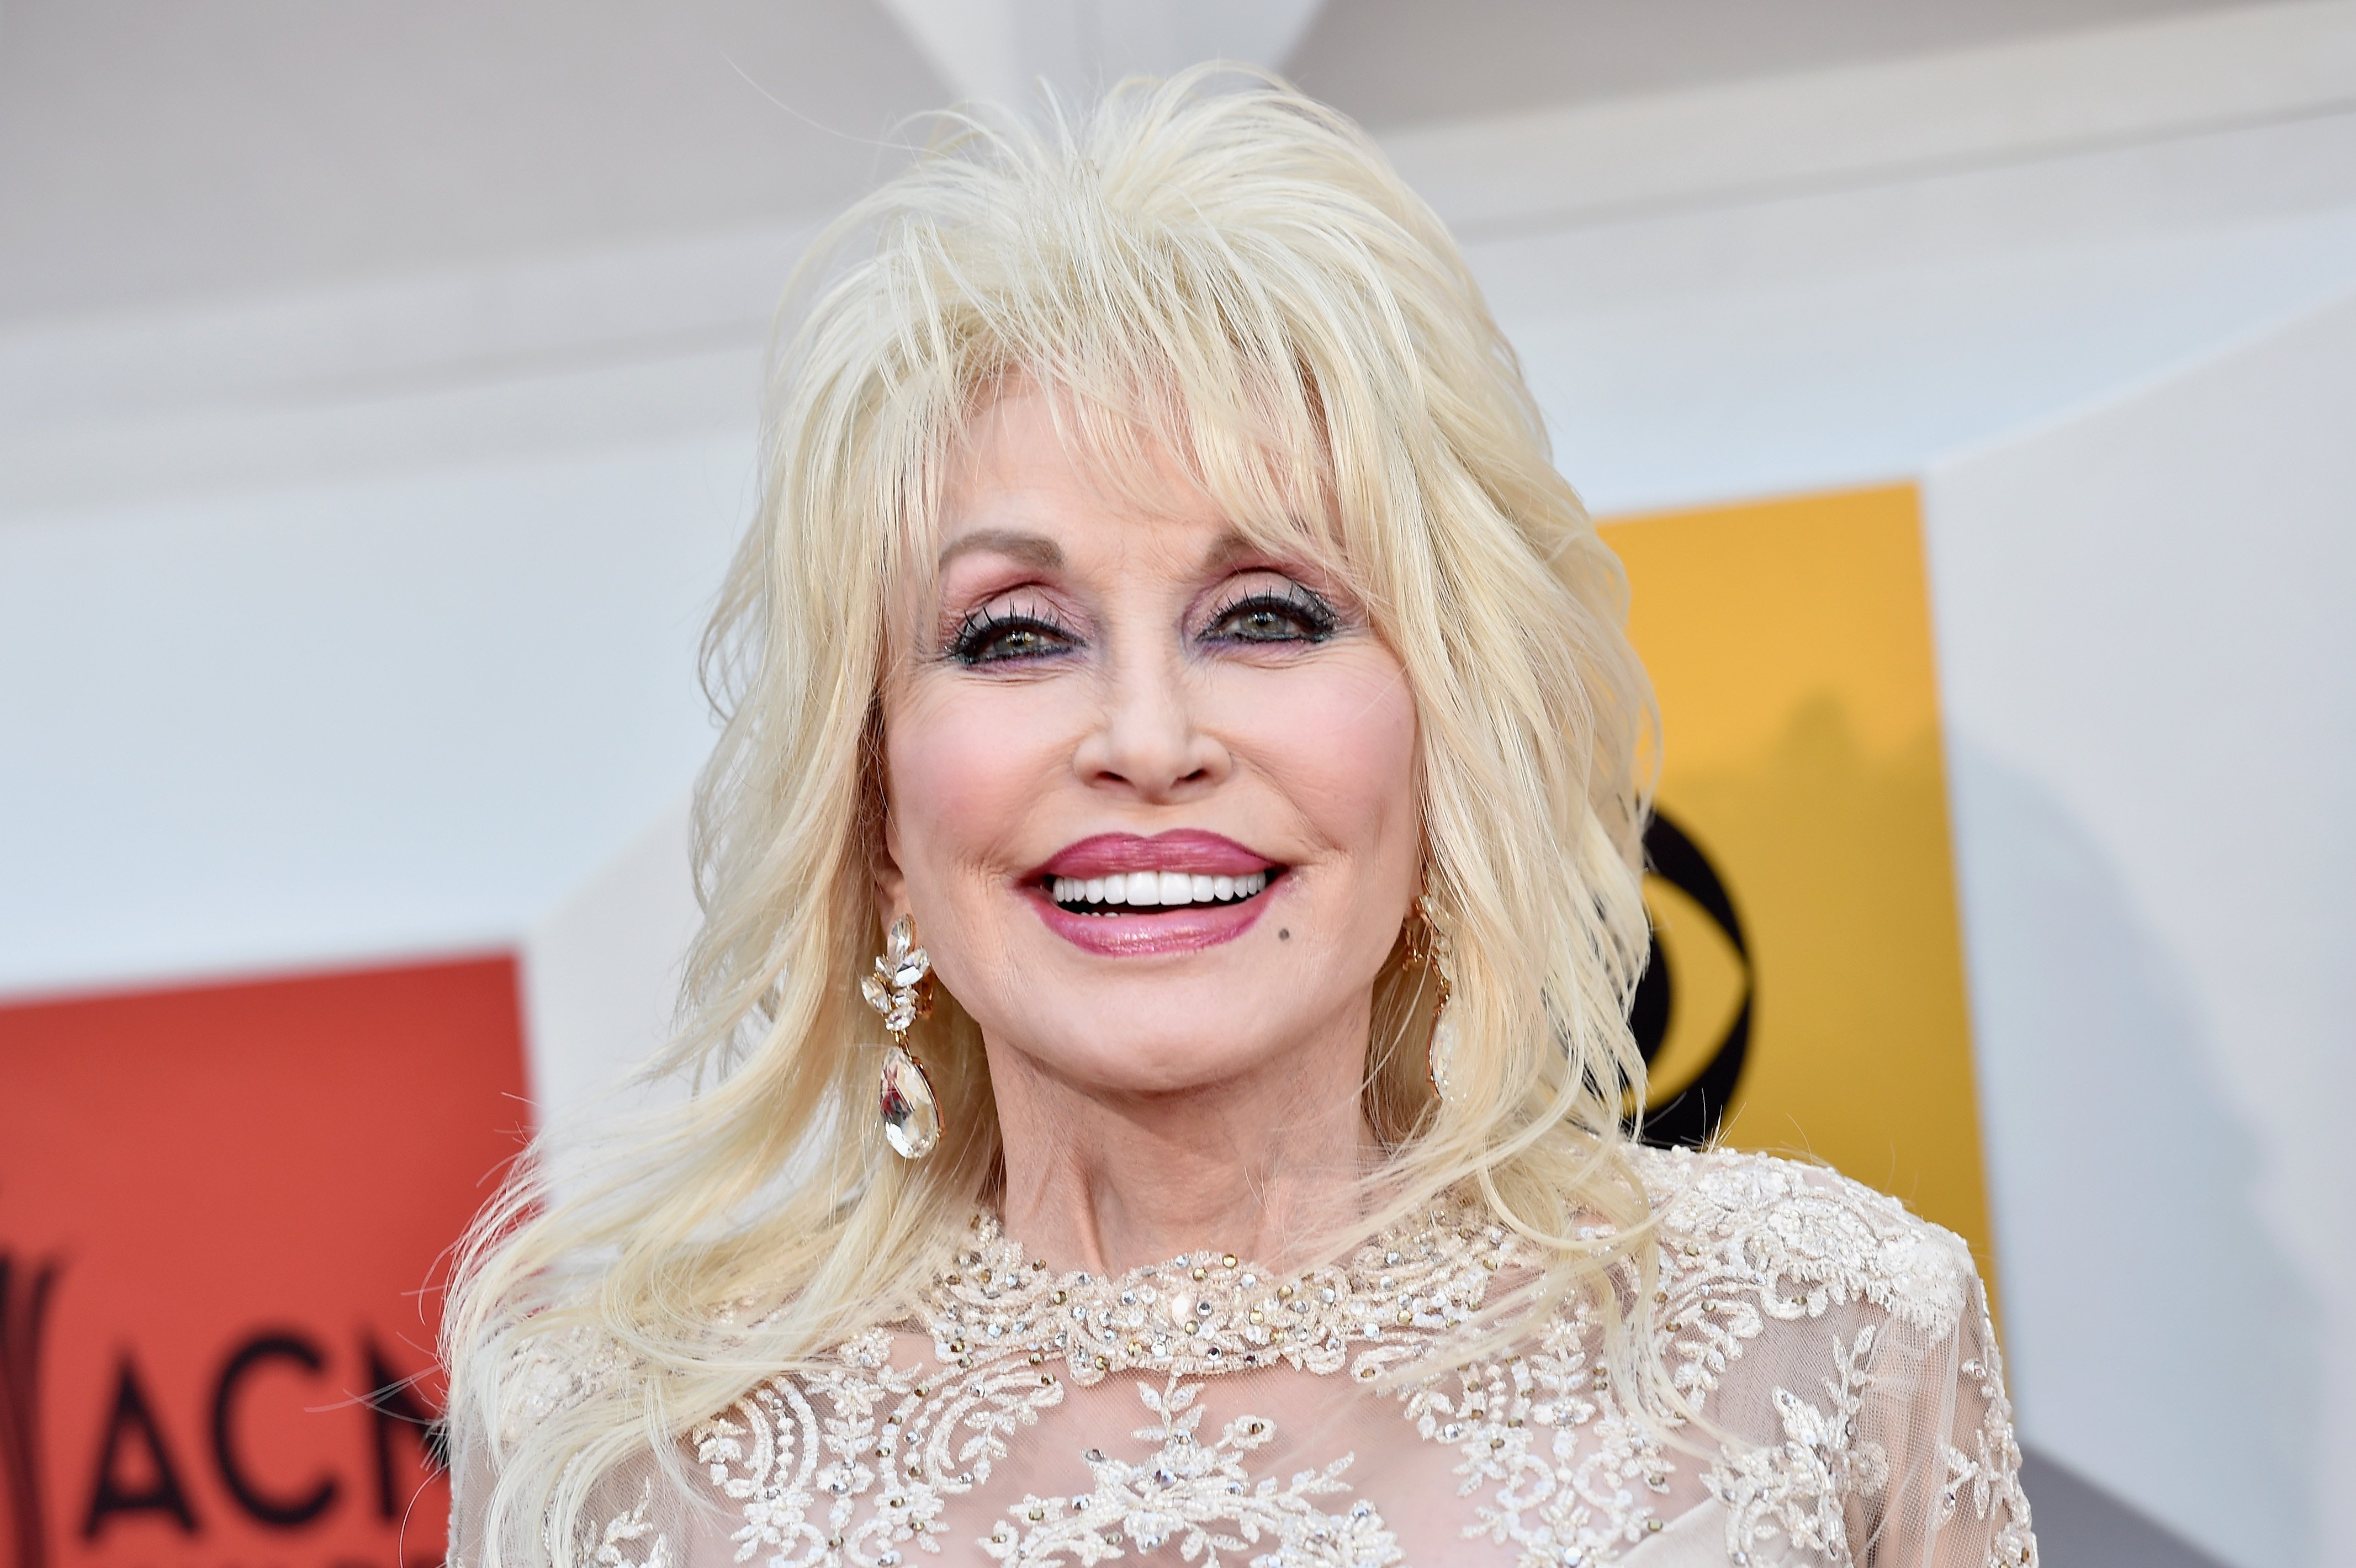 Dolly Parton attends the 51st Academy of Country Music Awards in Las Vegas, Nevada on April 3, 2016 | Photo: Getty Images